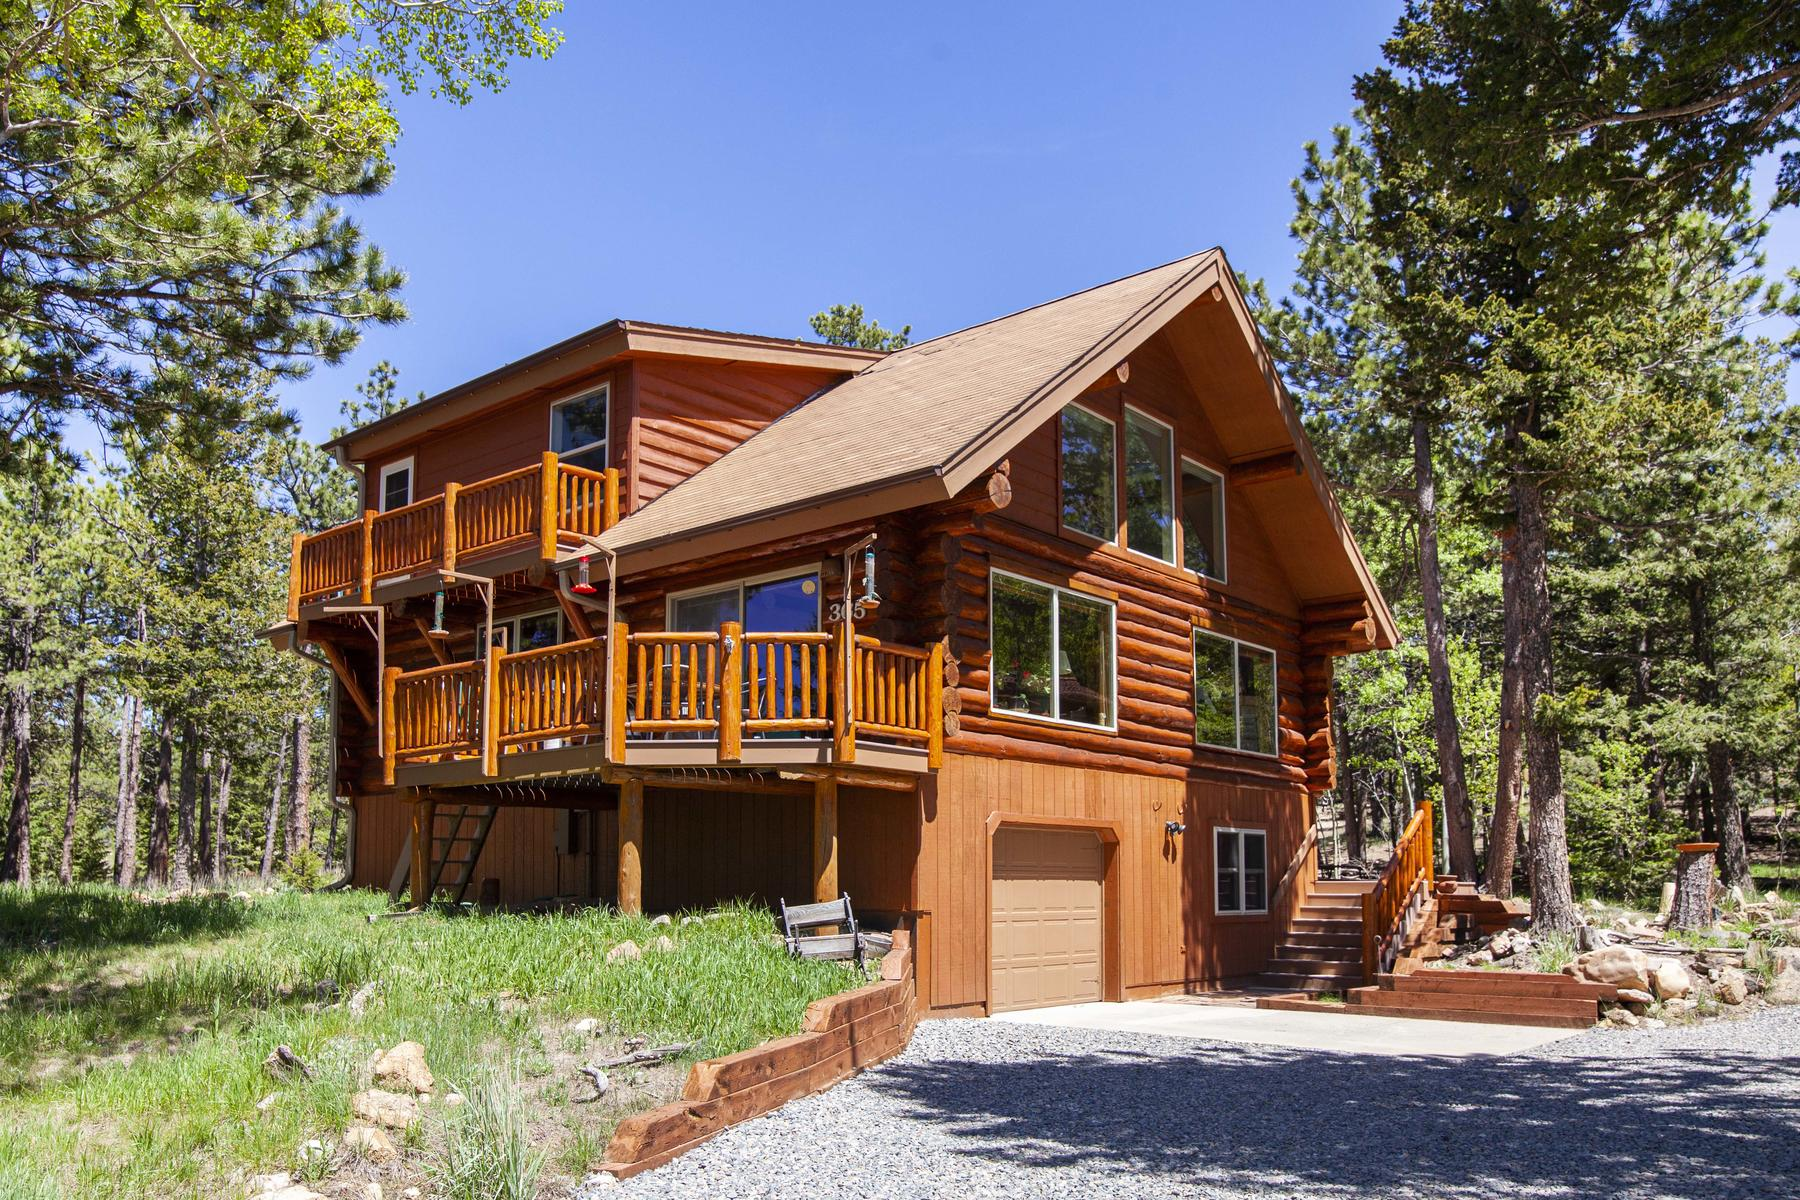 Single Family Homes for Sale at Surround Yourself With Luxury, Views And Nature 365 Overland Dr, Ward, Colorado 80481 United States